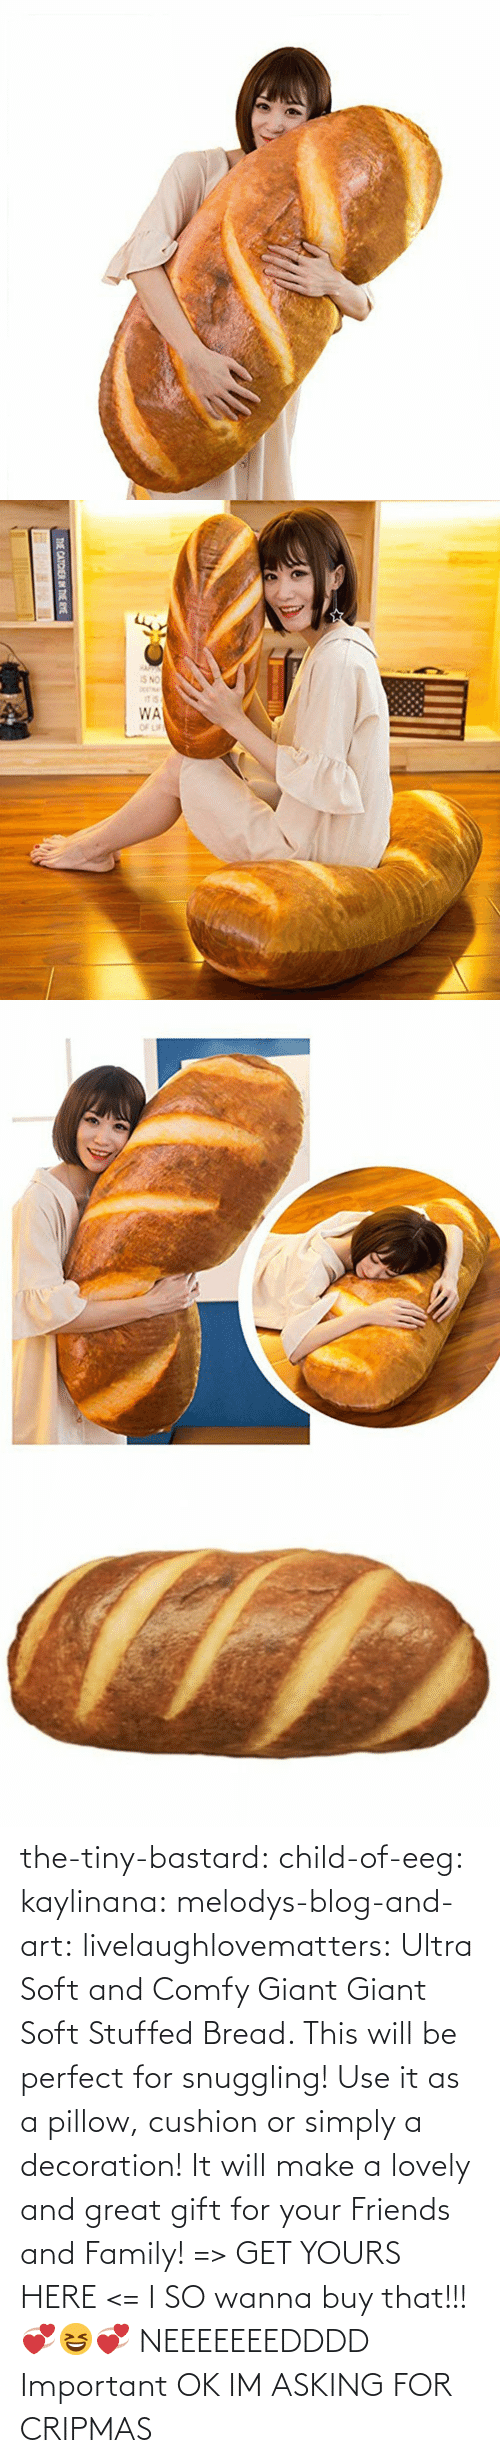 Decoration: THE CATCHER IN THE RYE the-tiny-bastard:  child-of-eeg:  kaylinana: melodys-blog-and-art:  livelaughlovematters:  Ultra Soft and Comfy Giant Giant Soft Stuffed Bread. This will be perfect for snuggling! Use it as a pillow, cushion or simply a decoration! It will make a lovely and great gift for your Friends and Family! => GET YOURS HERE <=   I SO wanna buy that!!! 💞😆💞   NEEEEEEEDDDD   Important  OK IM ASKING FOR CRIPMAS